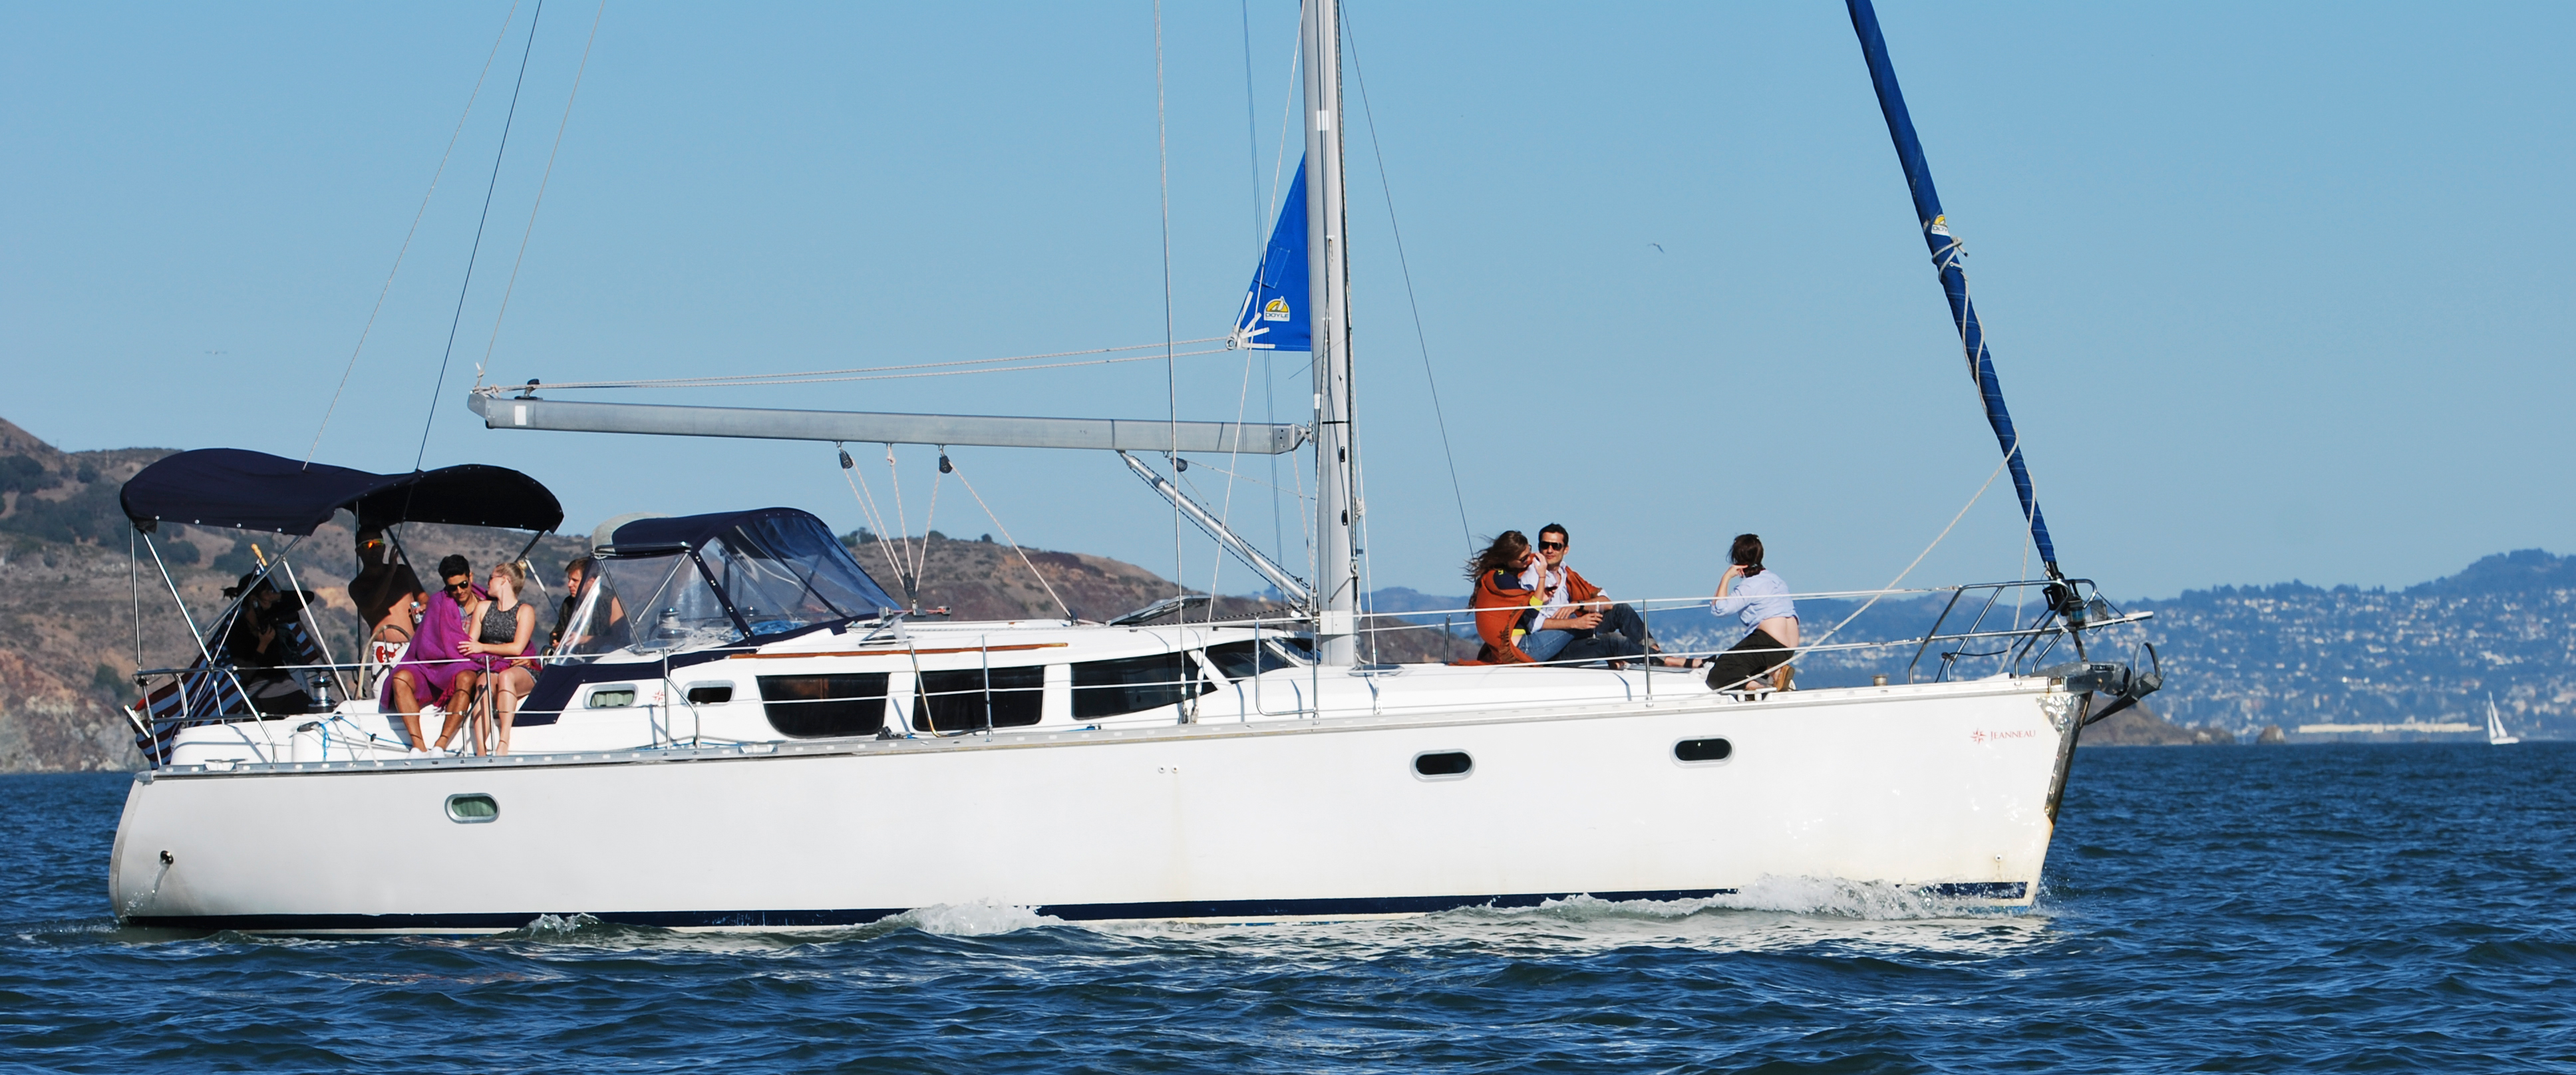 san-francisco-bay-sailing-charters